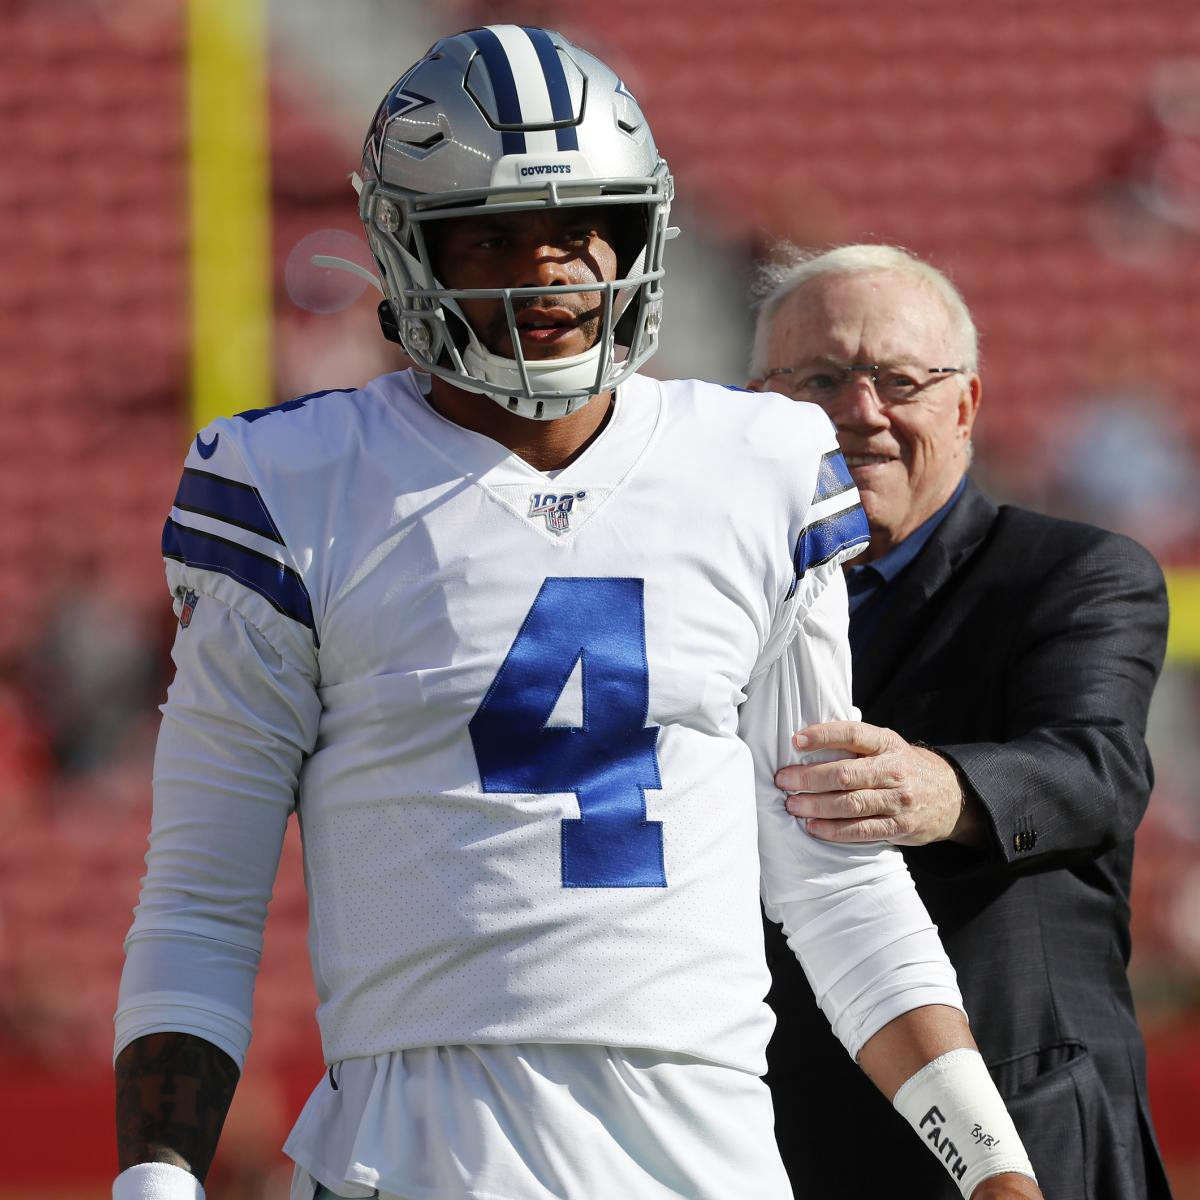 Don't Be Surprised If Dak Prescott and the Dallas Cowboys Part Ways